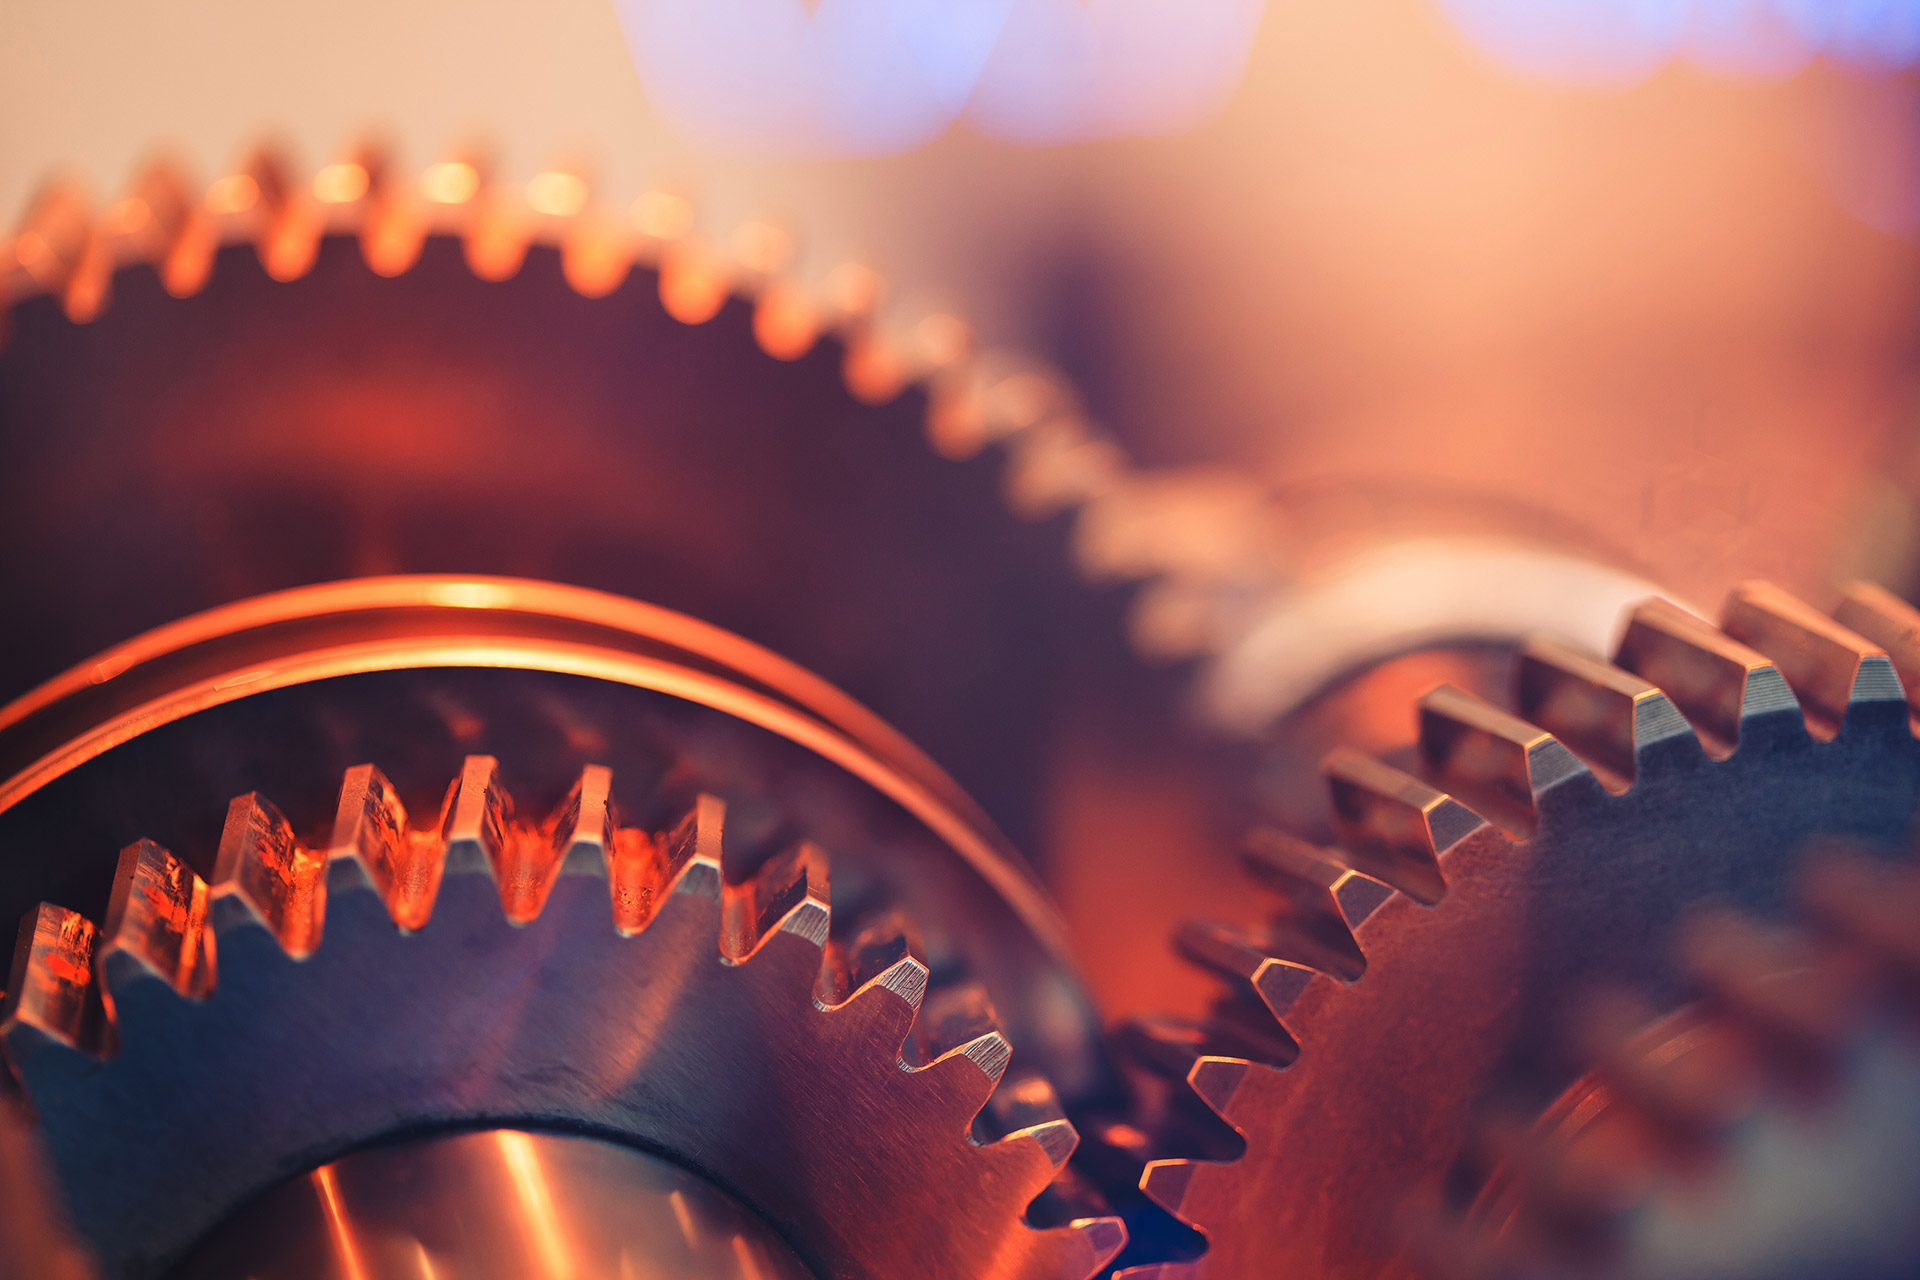 Group of gears turning